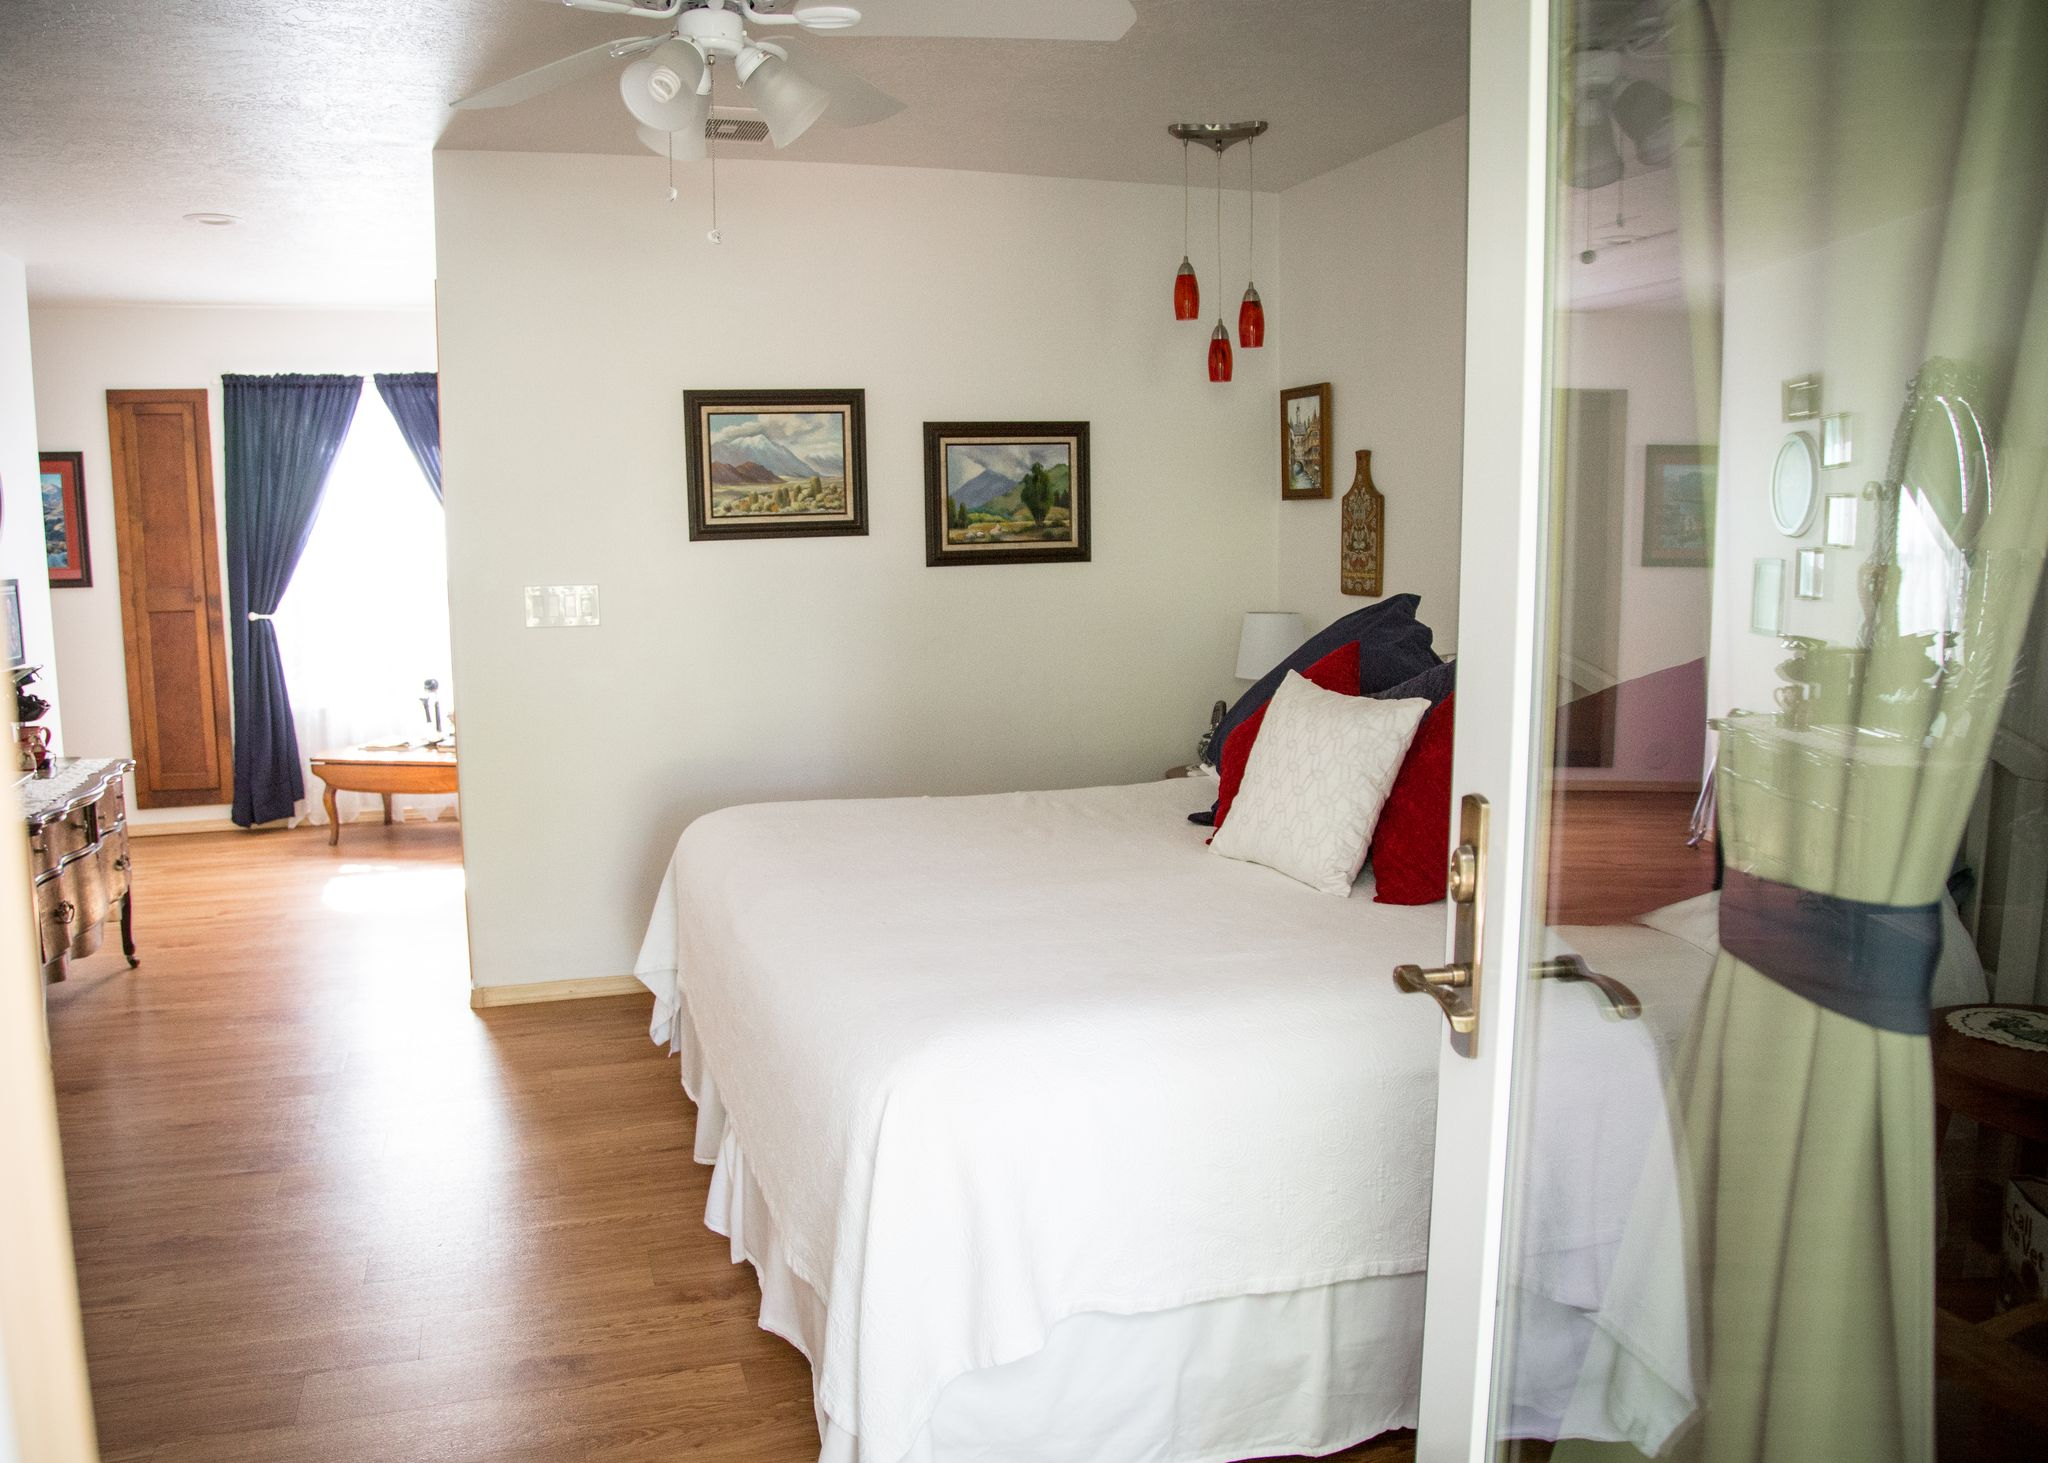 Albuquerque Bed and Breakfast